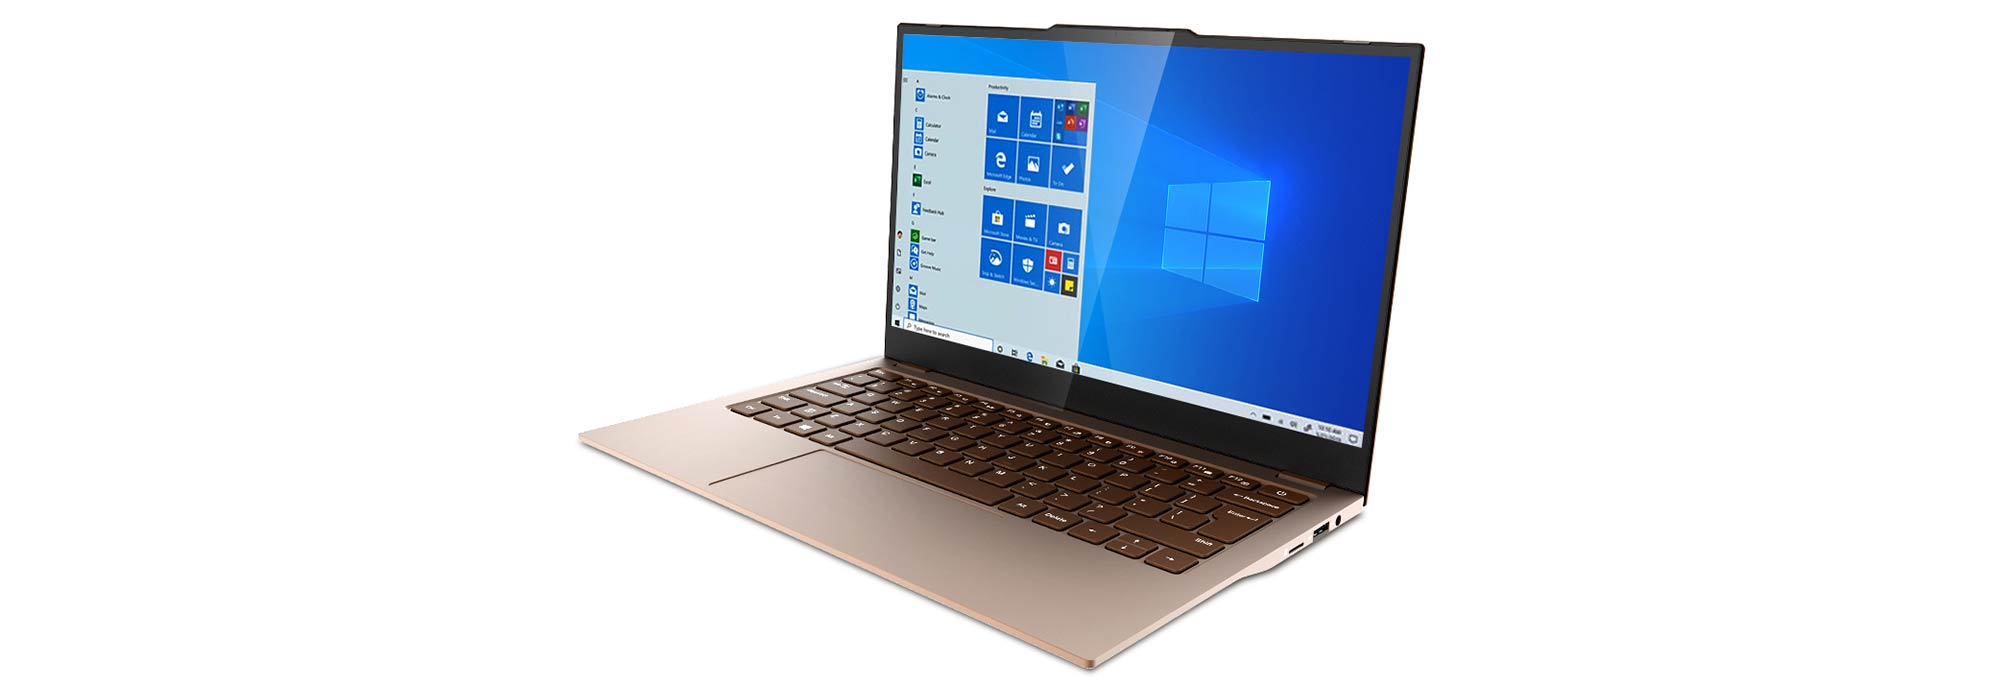 Jumper EZbook X3 Air: Günstiges China-Notebook im Test